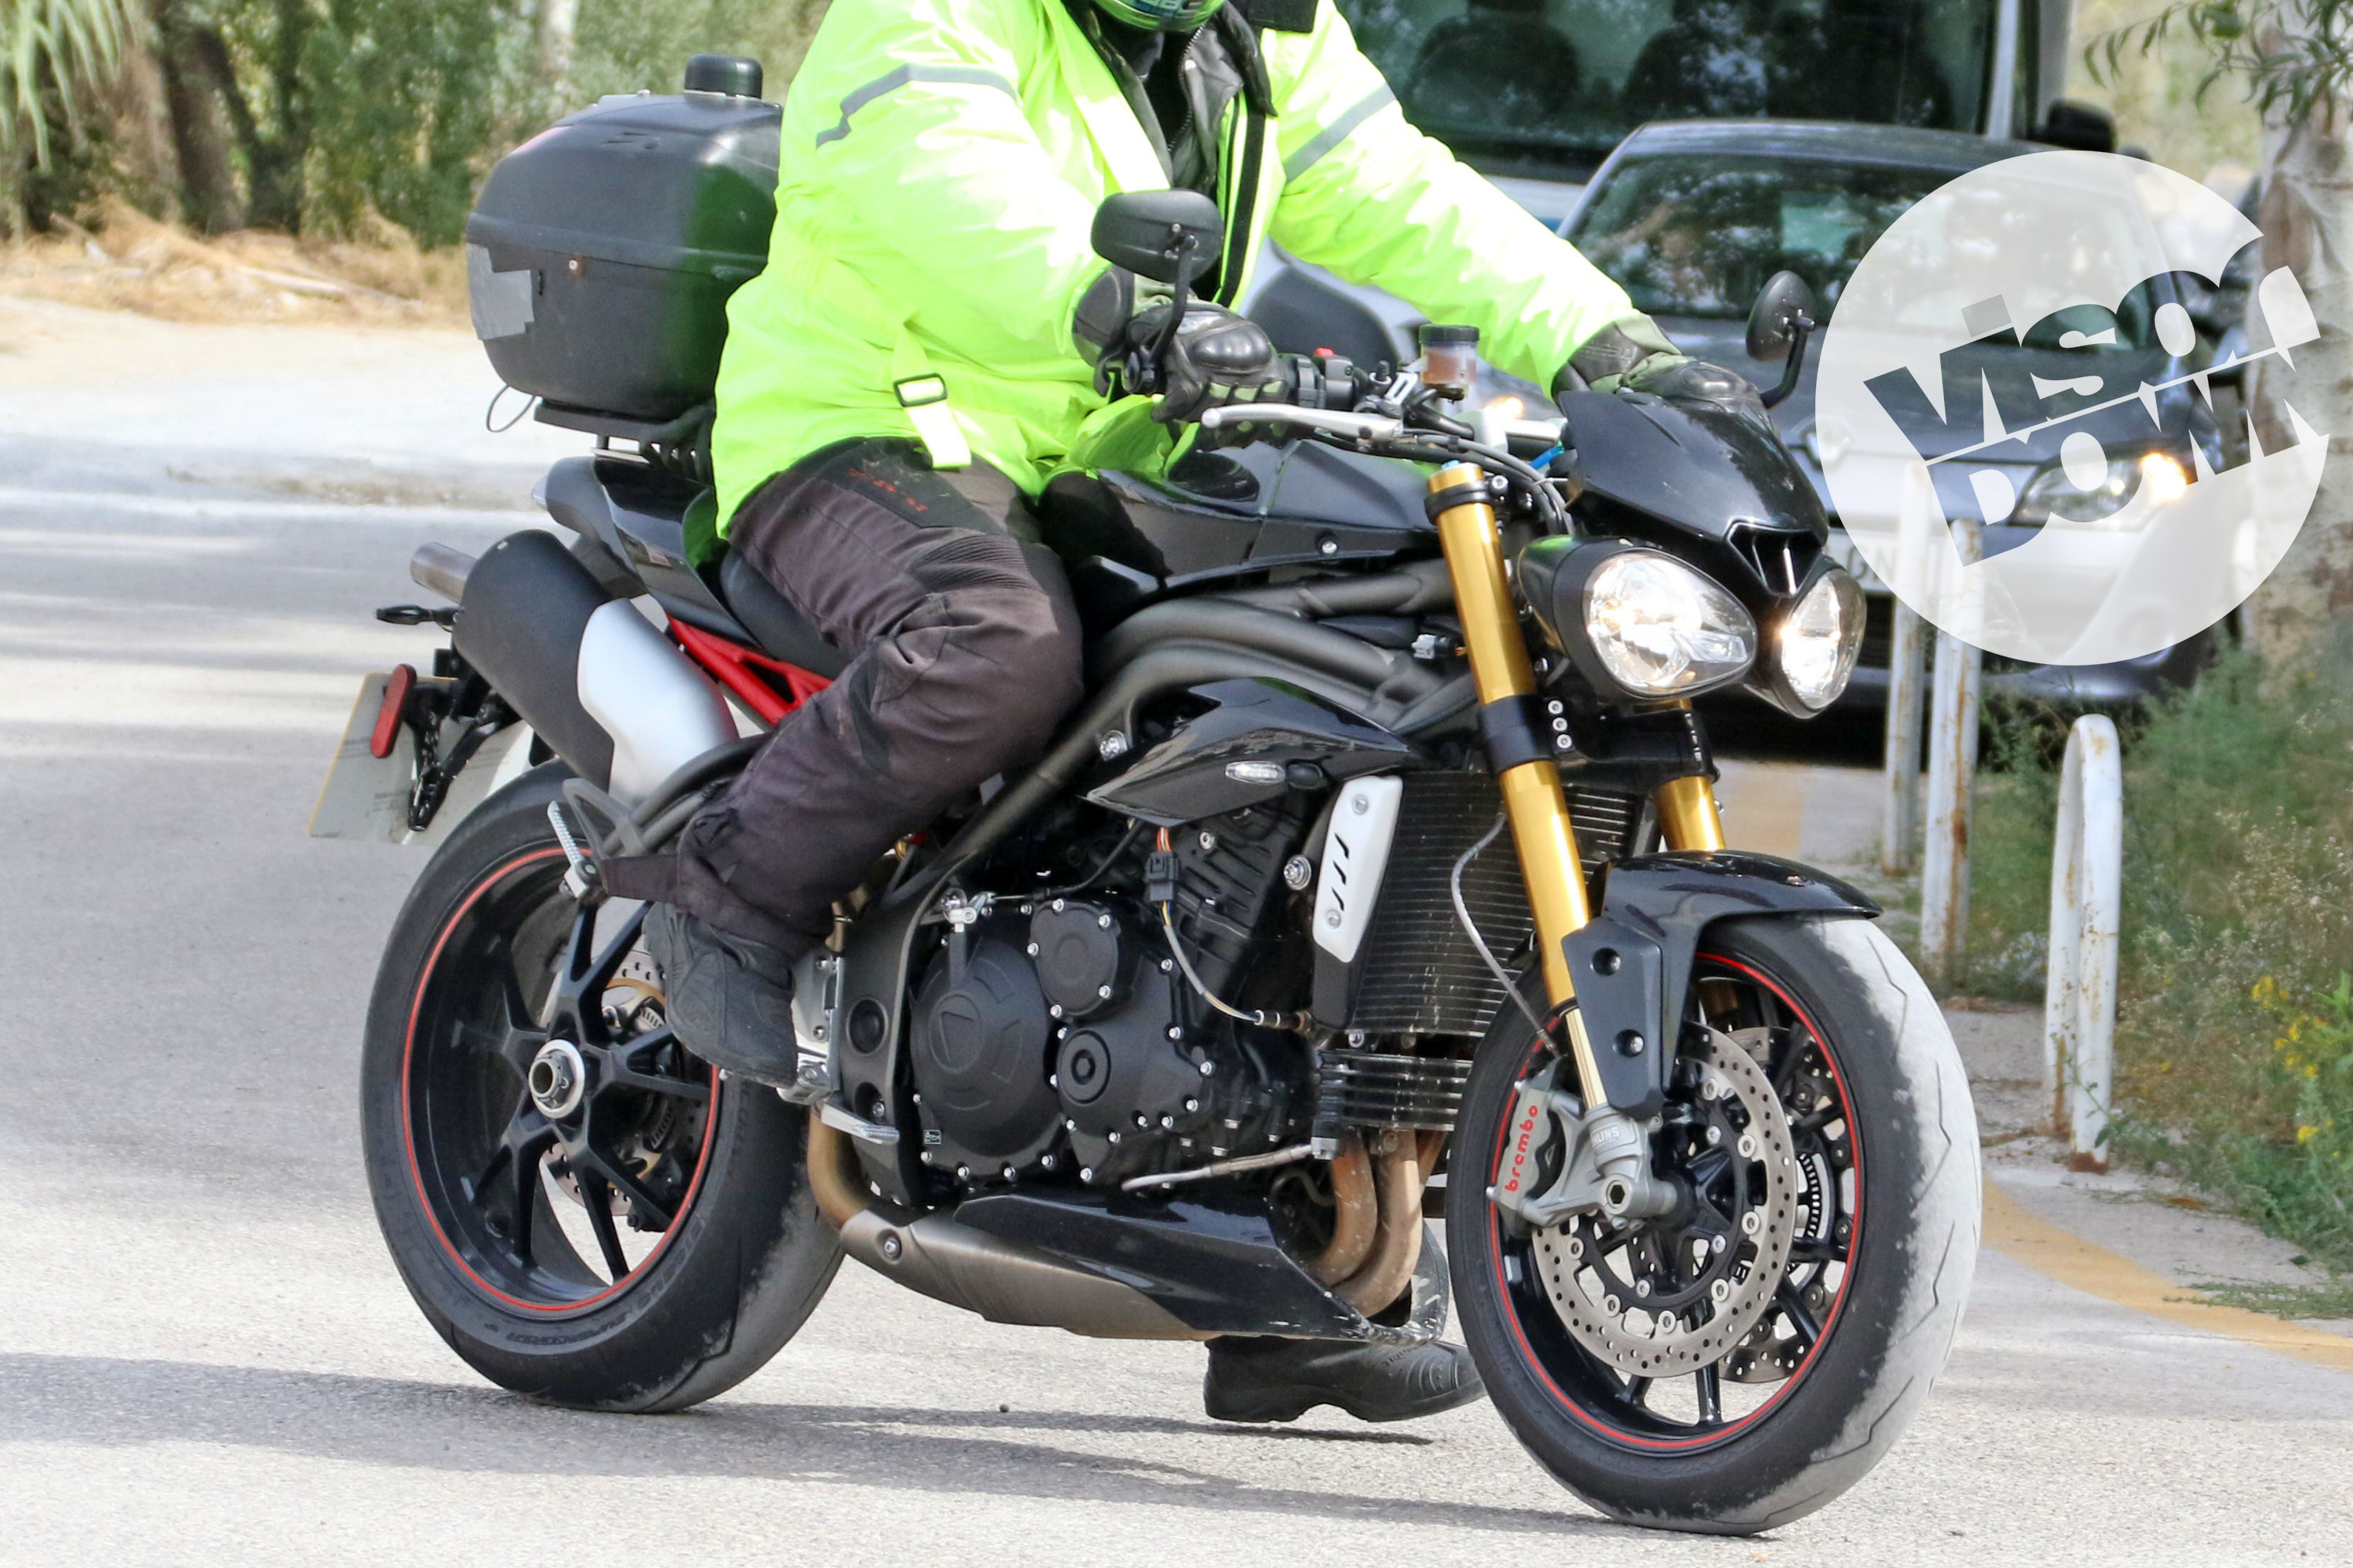 new triumph speed triple r revealed visordown. Black Bedroom Furniture Sets. Home Design Ideas